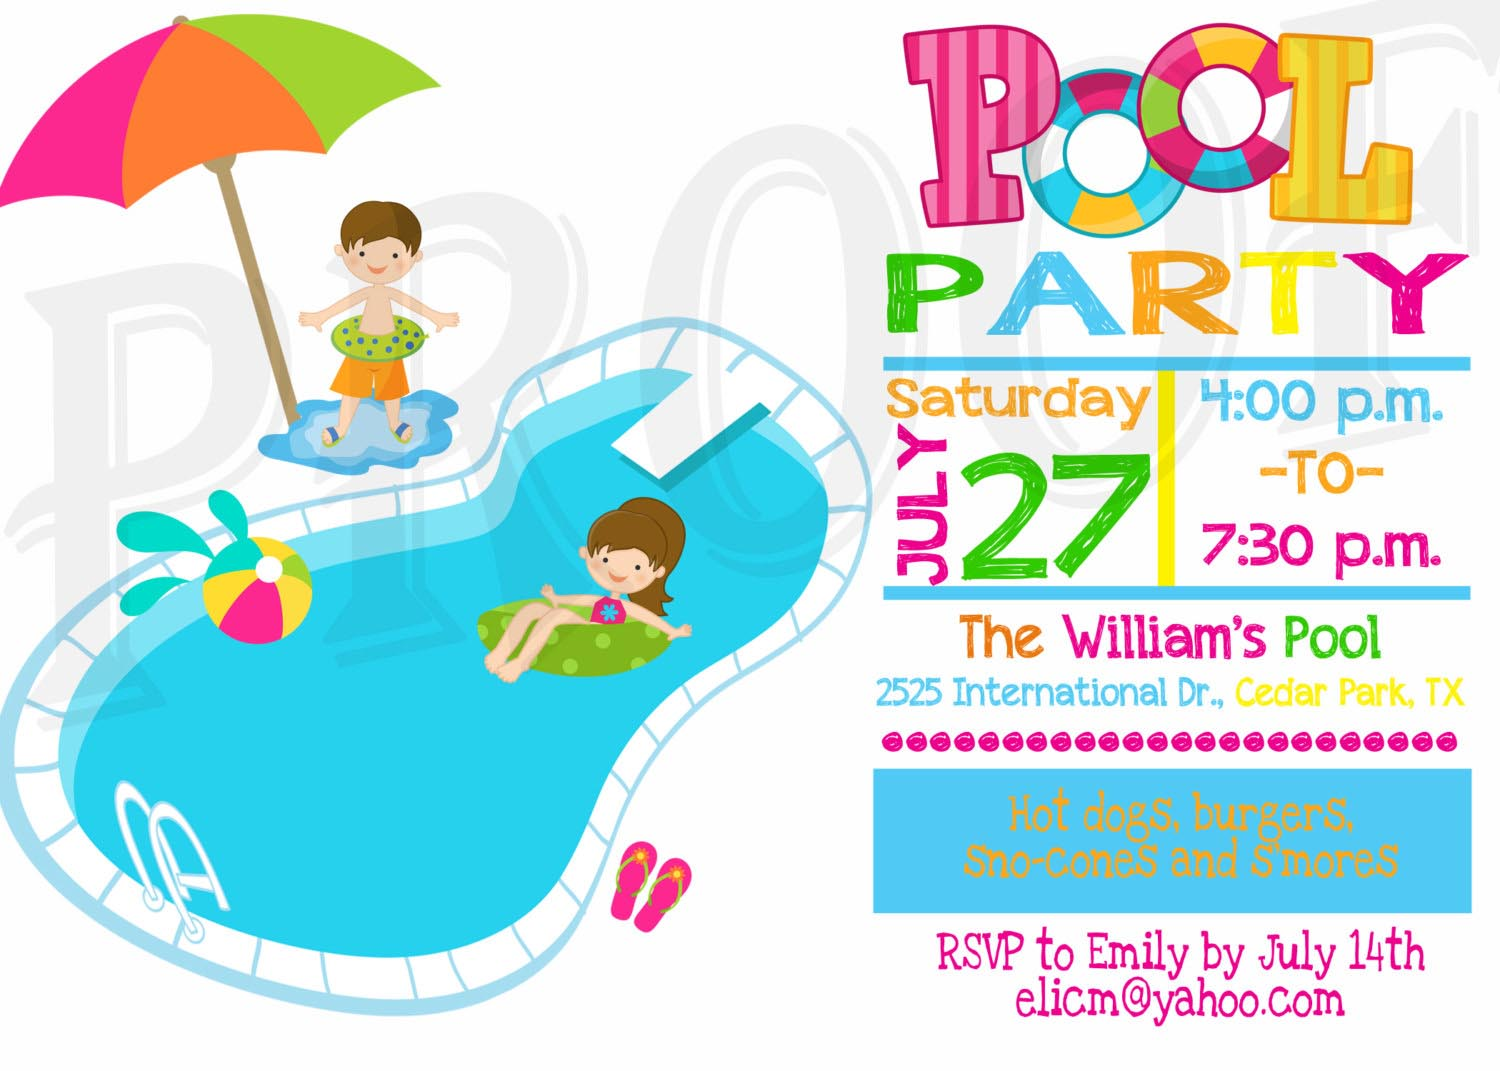 Blue Water clipart pool party Party Kid Invitation Party Pinterest